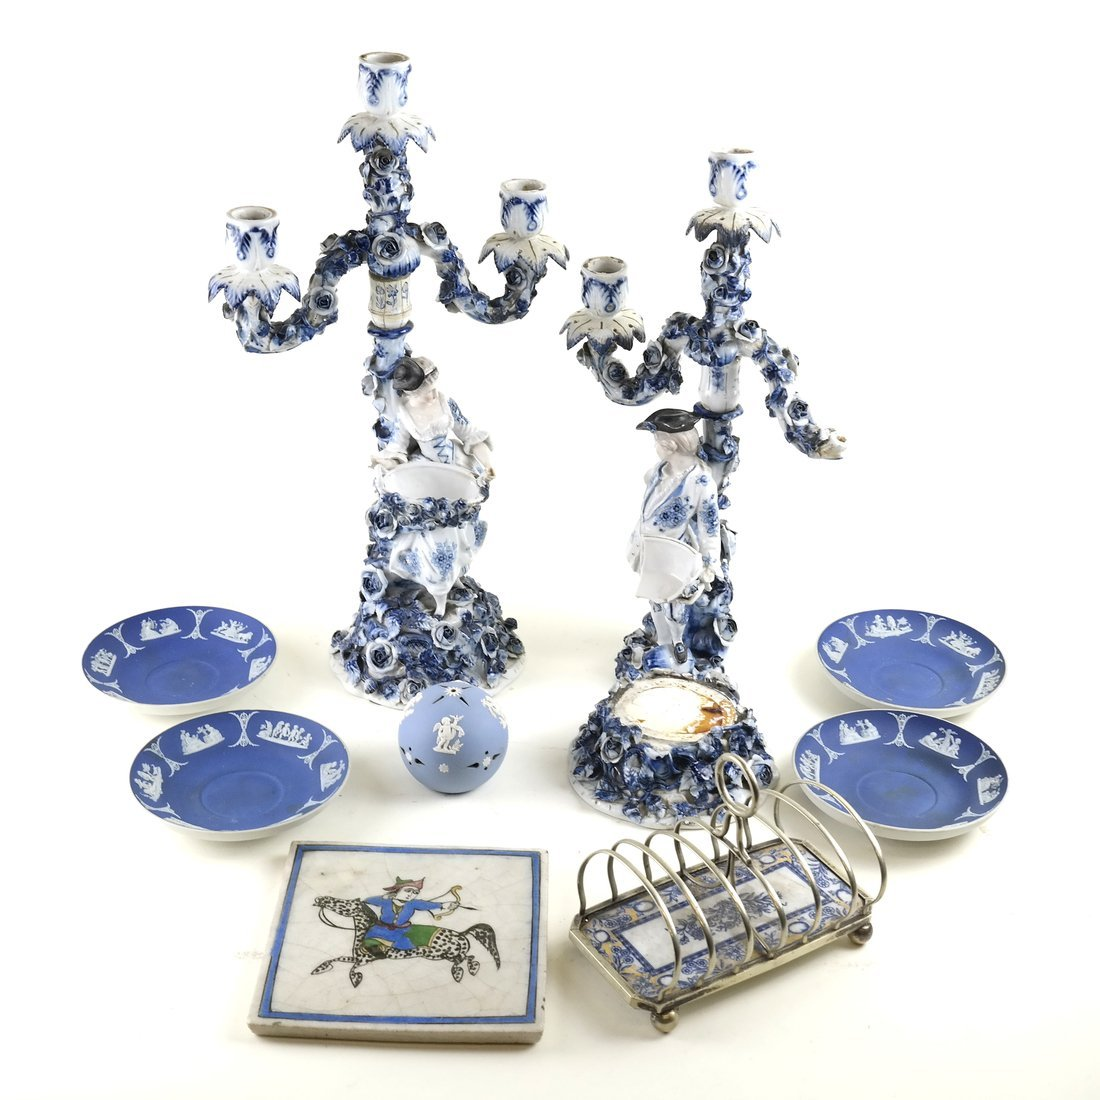 8 Asst. Blue and White Decorated Objects